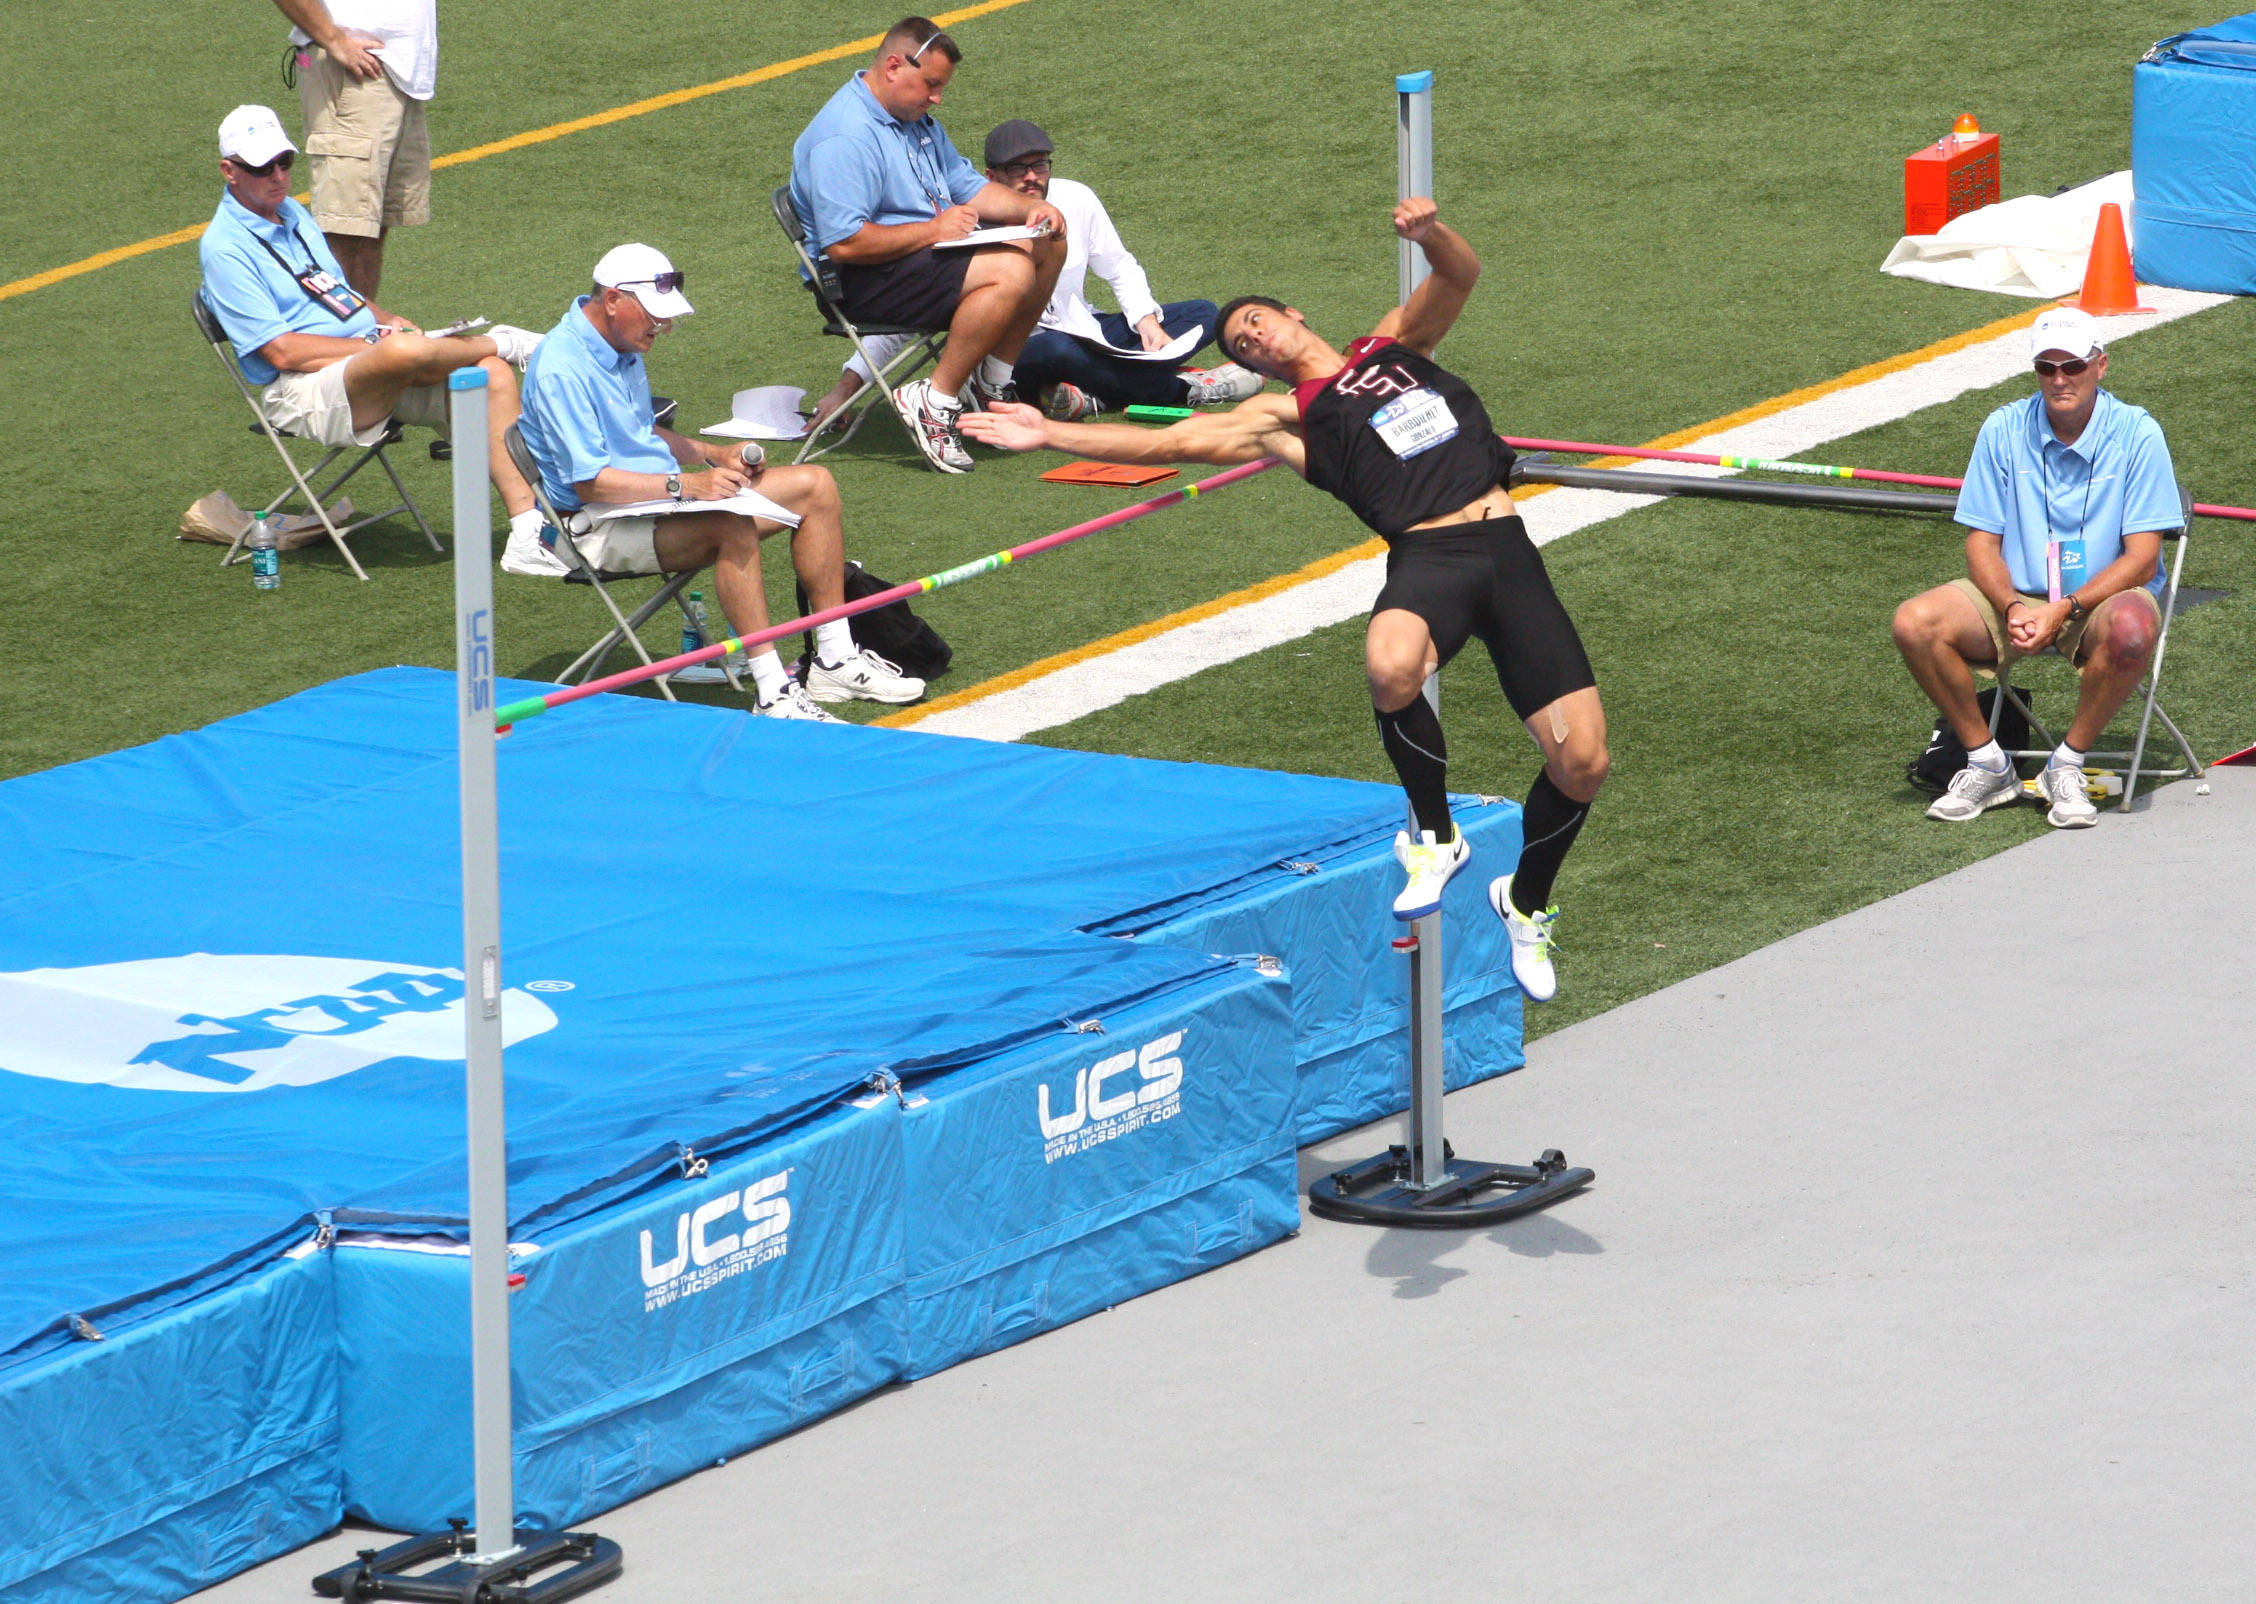 Gonzalo Barroilhet clears 1.96 meters in the high jump portion of the decathlon at the NCAA Championship.